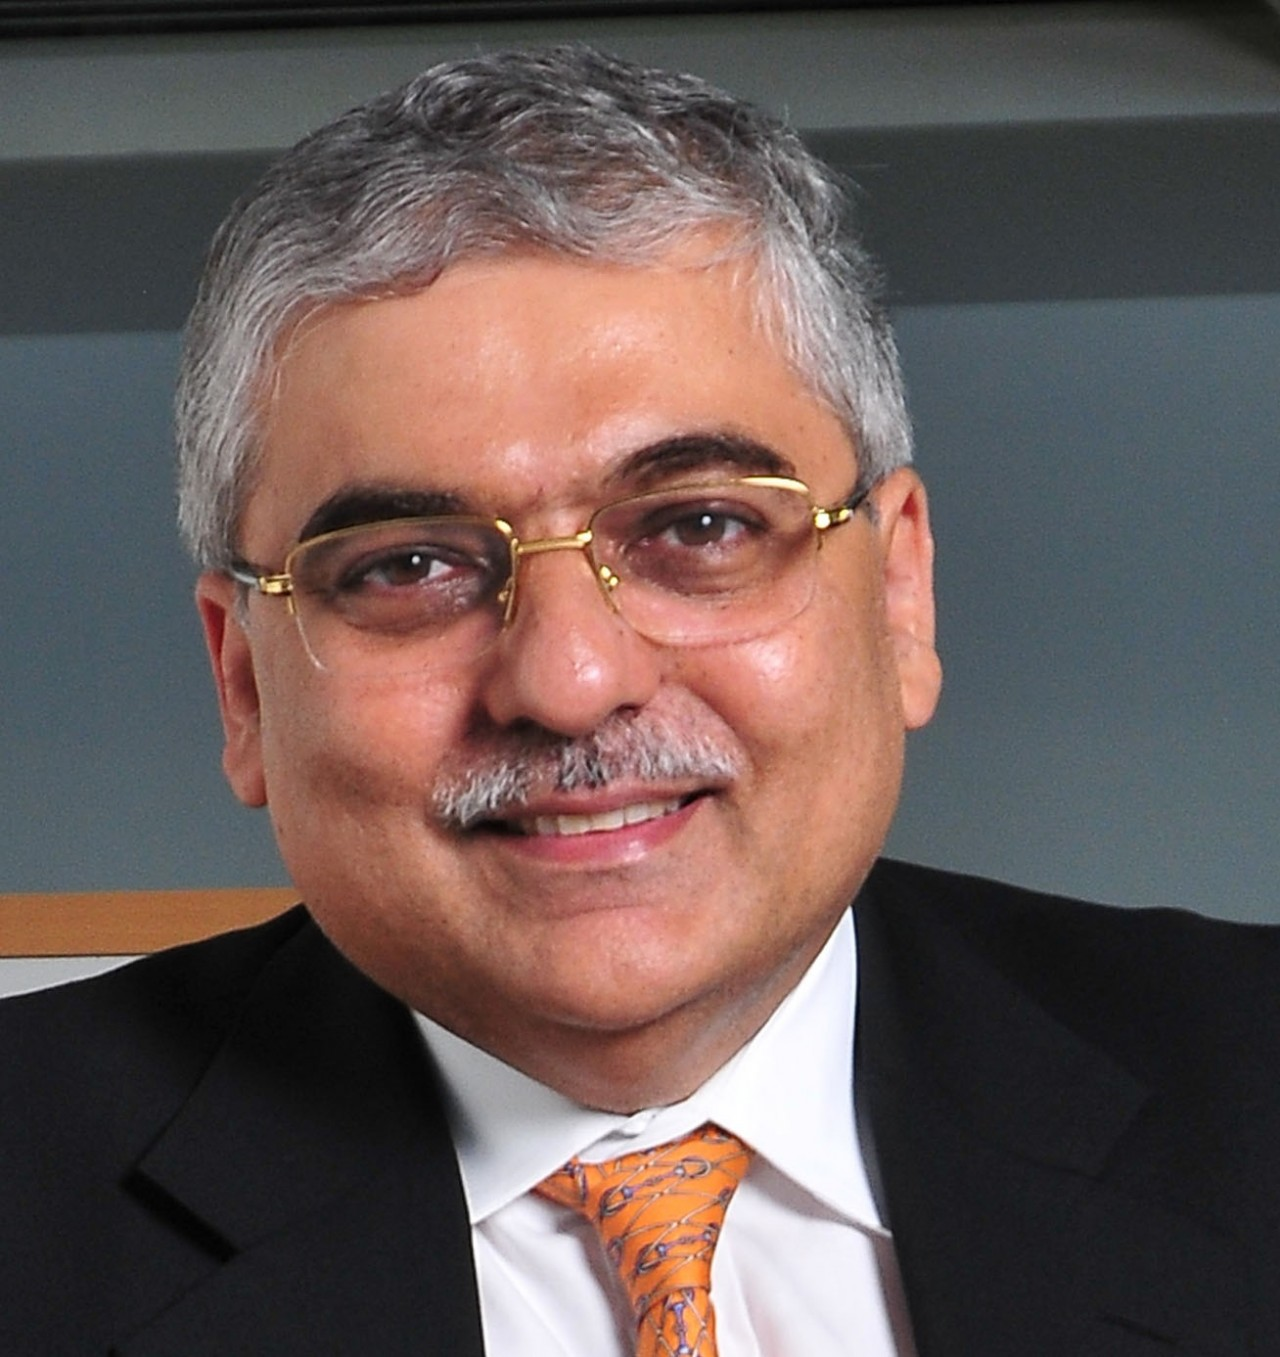 Dentsu Aegis Network elevates Ashish Bhasin to become CEO of its APAC  operations | The Drum